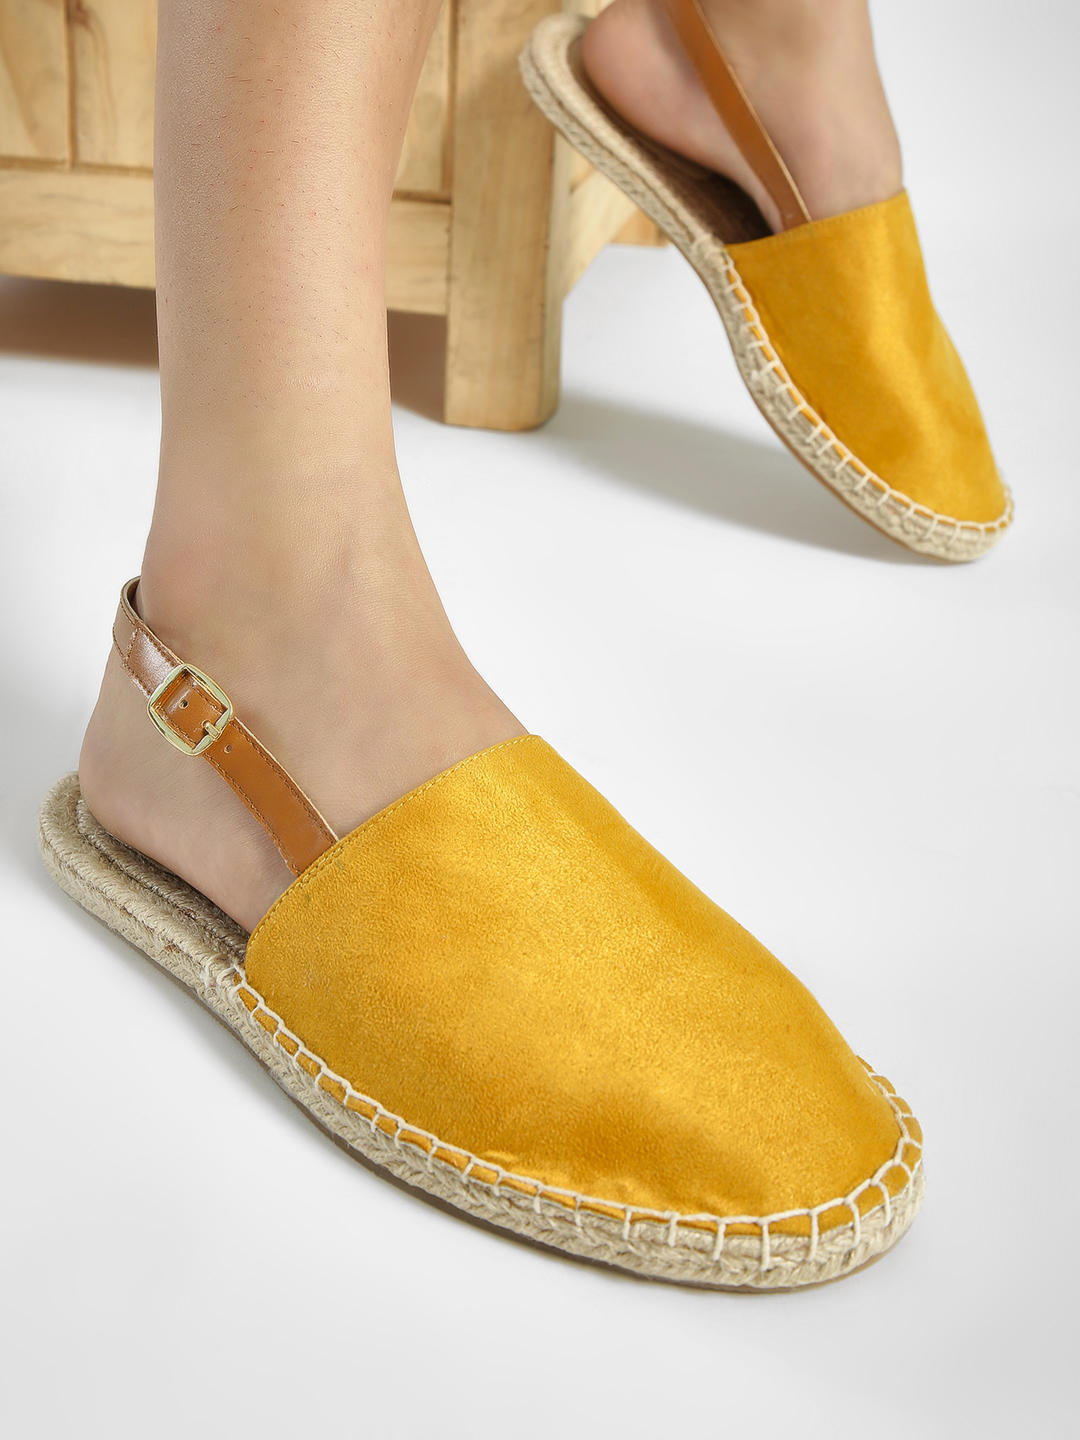 ILLIMITE Yellow Suede Espadrille Flat Sandals 1